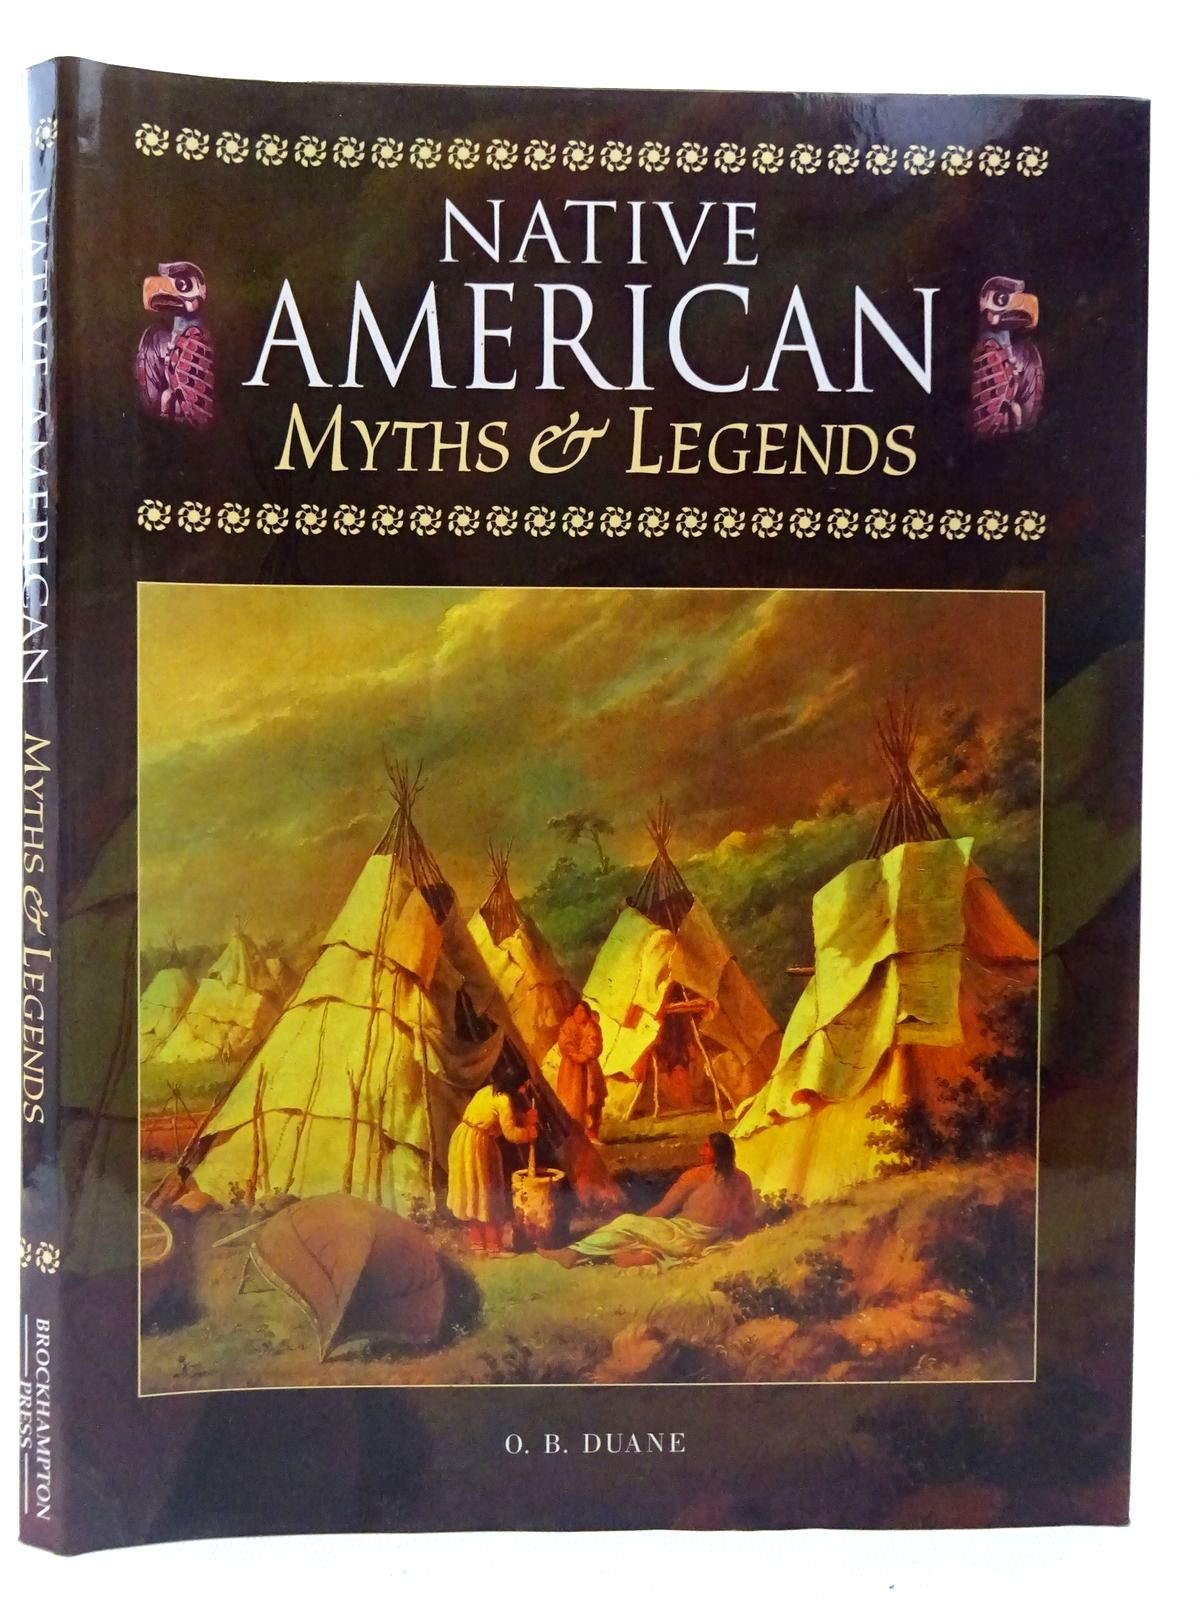 Photo of NATIVE AMERICAN MYTHS & LEGENDS written by Duane, O.B. published by Brockhampton Press (STOCK CODE: 2126989)  for sale by Stella & Rose's Books